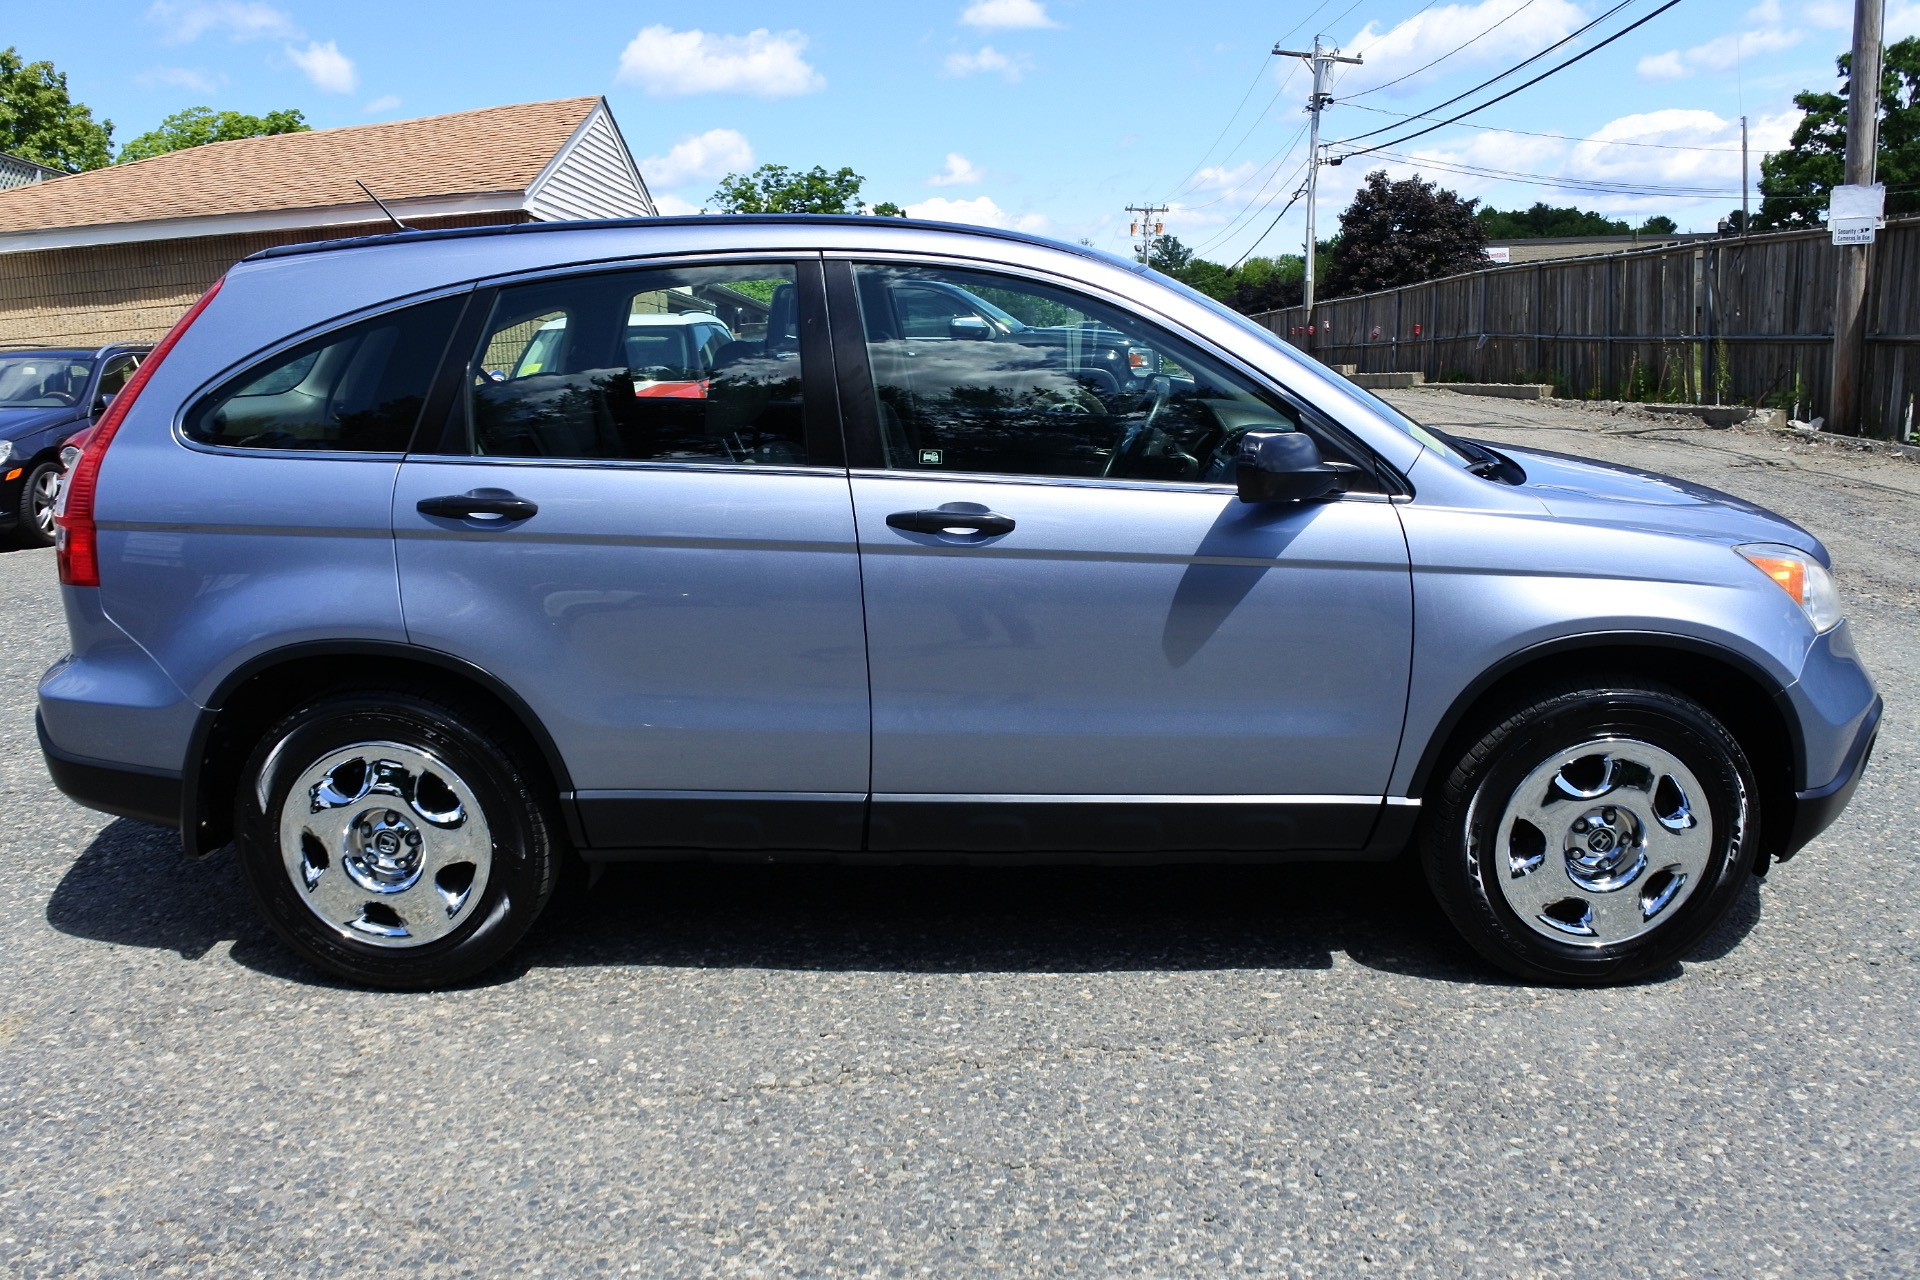 Used 2008 Honda Cr-v 4WD 5dr LX Used 2008 Honda Cr-v 4WD 5dr LX for sale  at Metro West Motorcars LLC in Shrewsbury MA 6